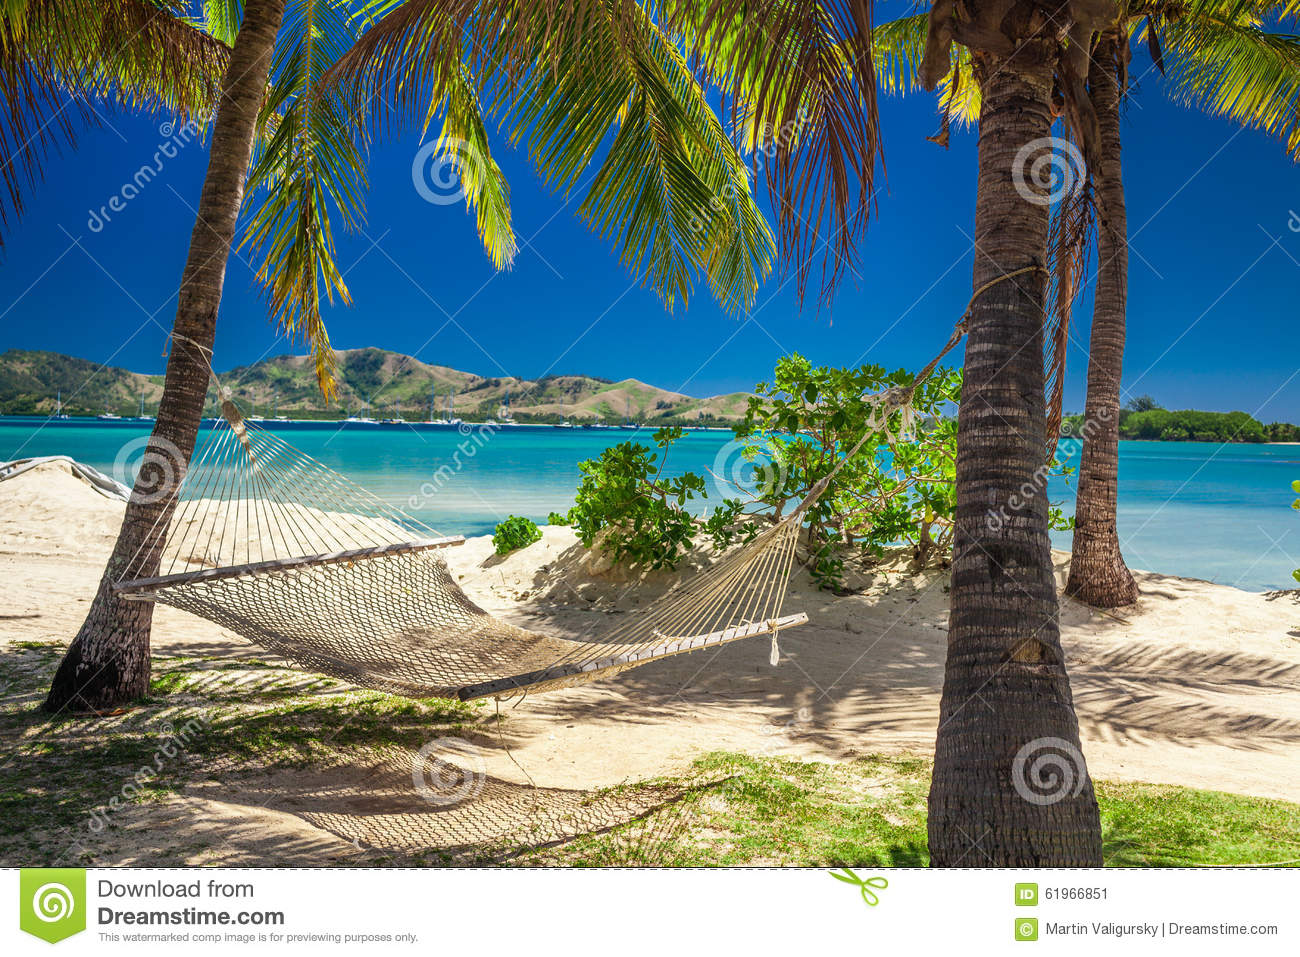 Hammock In The Shade Of Palm Trees On A Beach Stock Photo